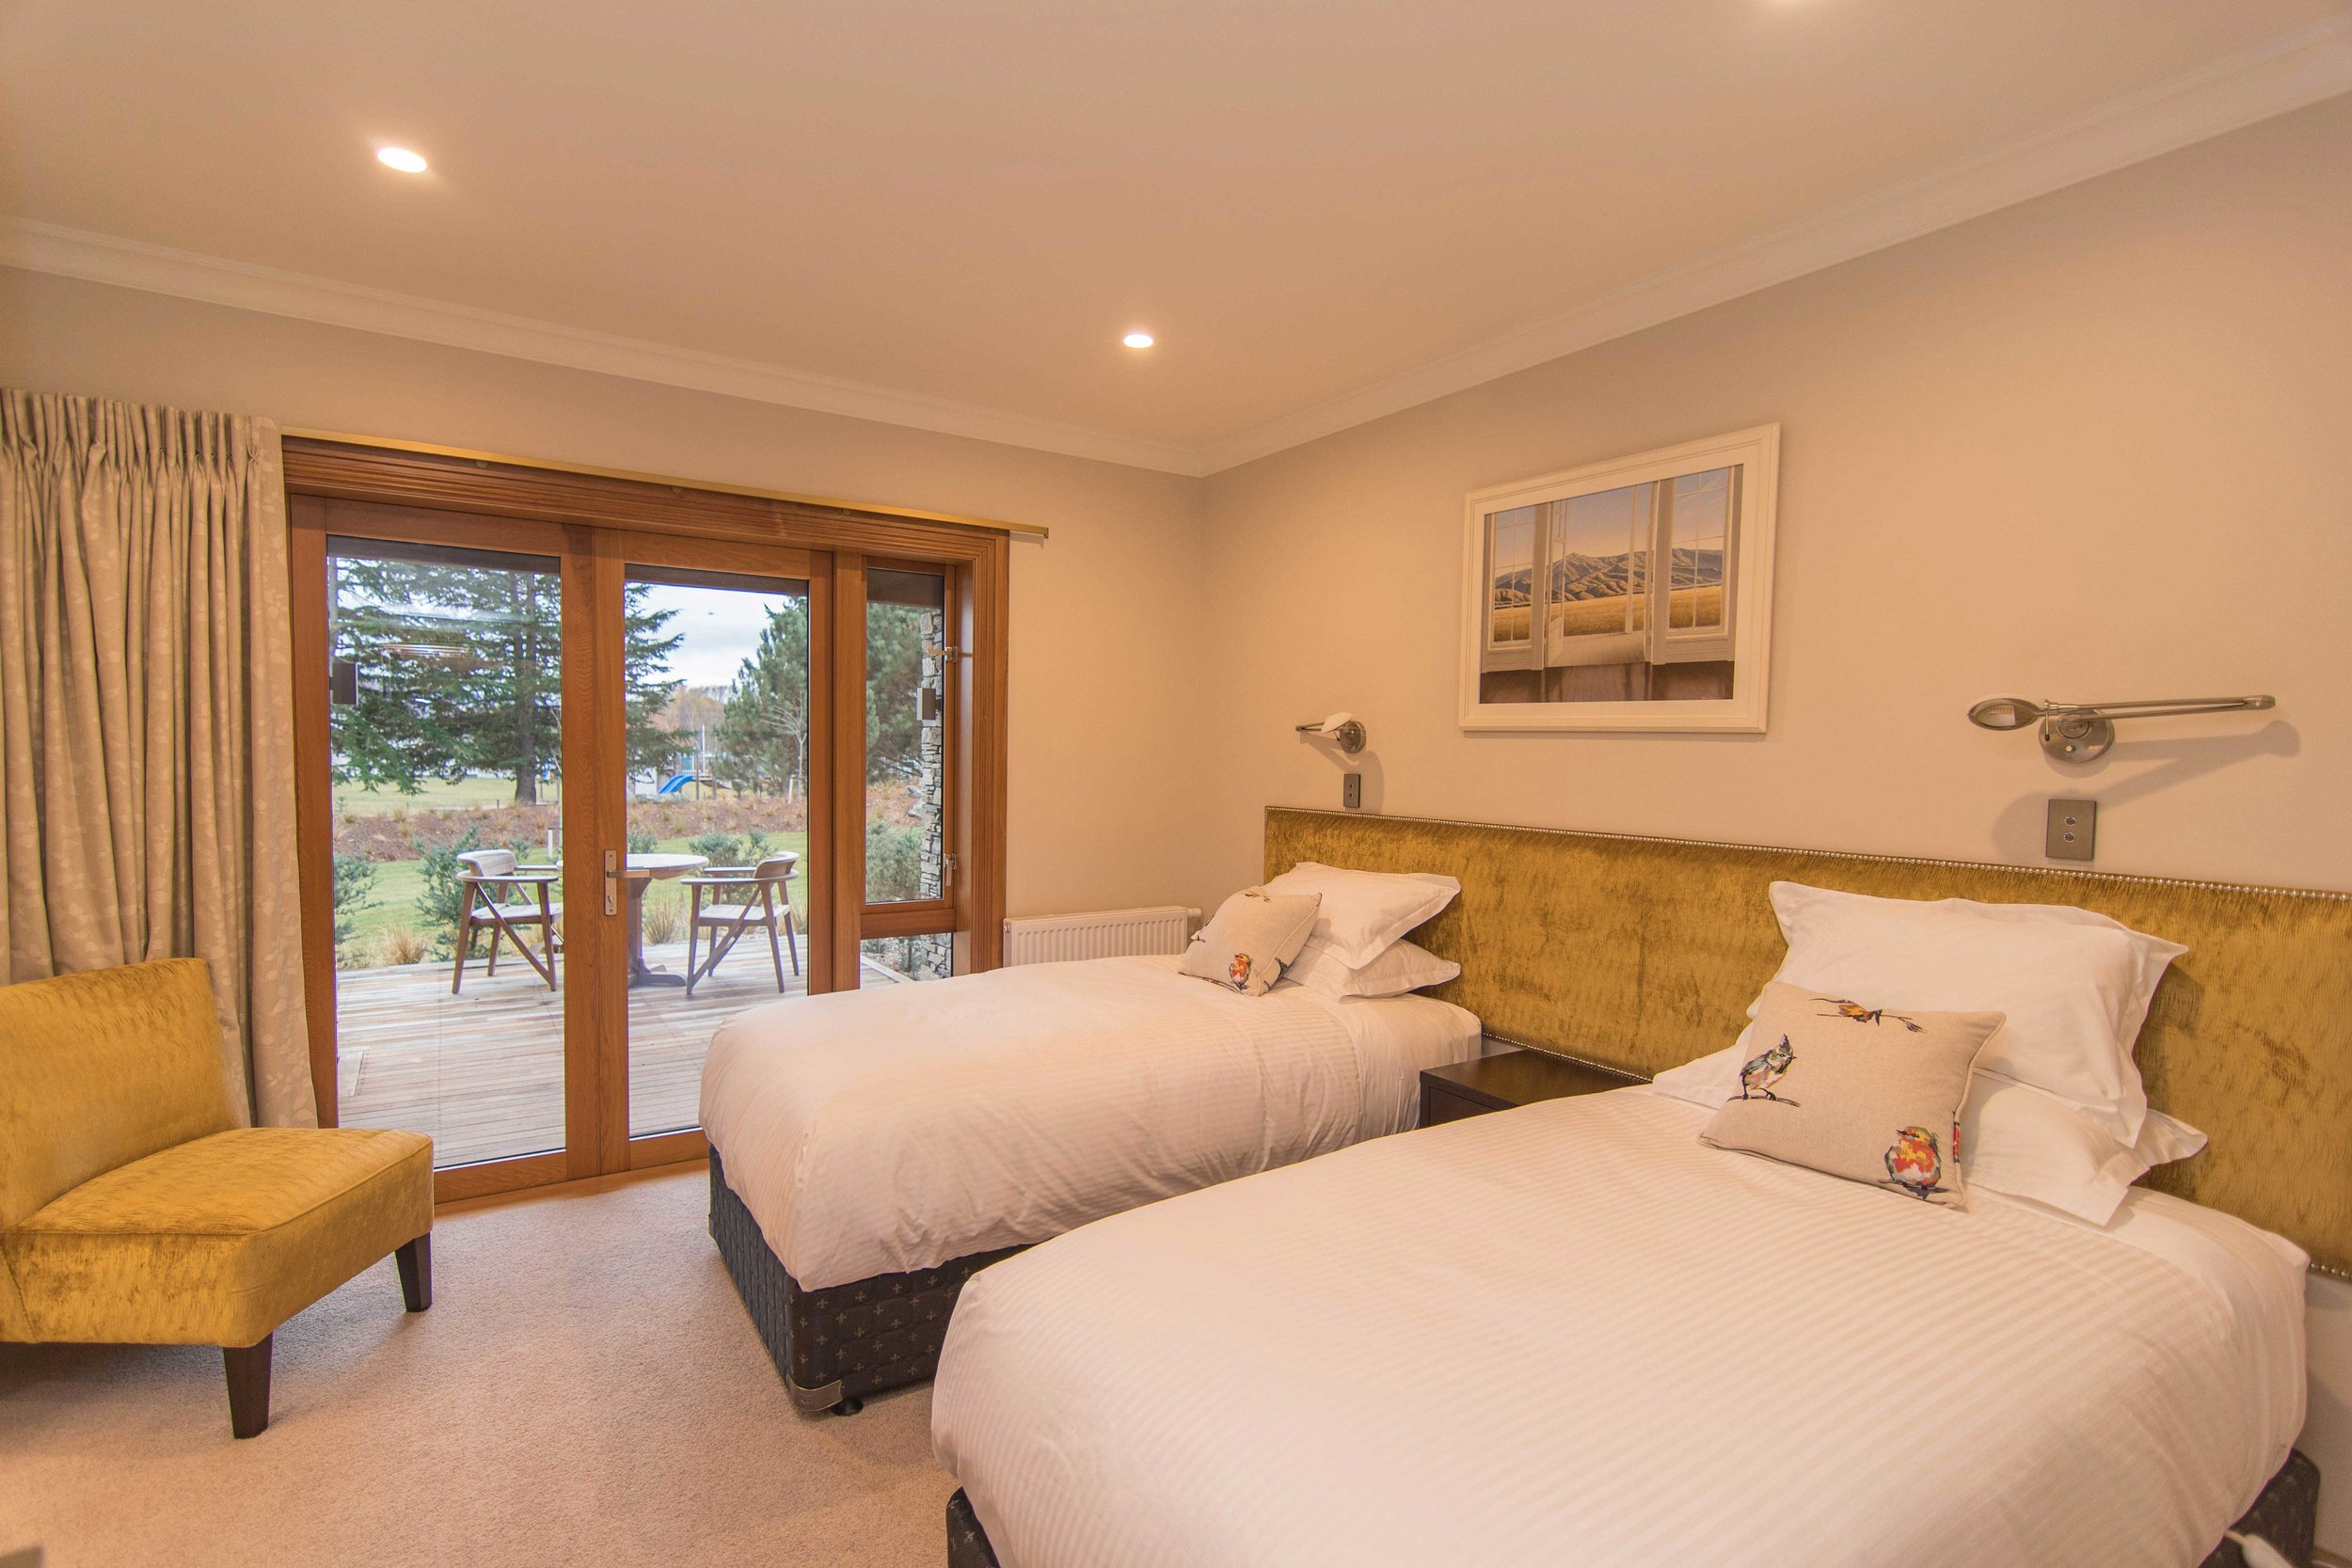 Sumptuous fine linen and original artwork set the scene for a memorable stay in Benmore.